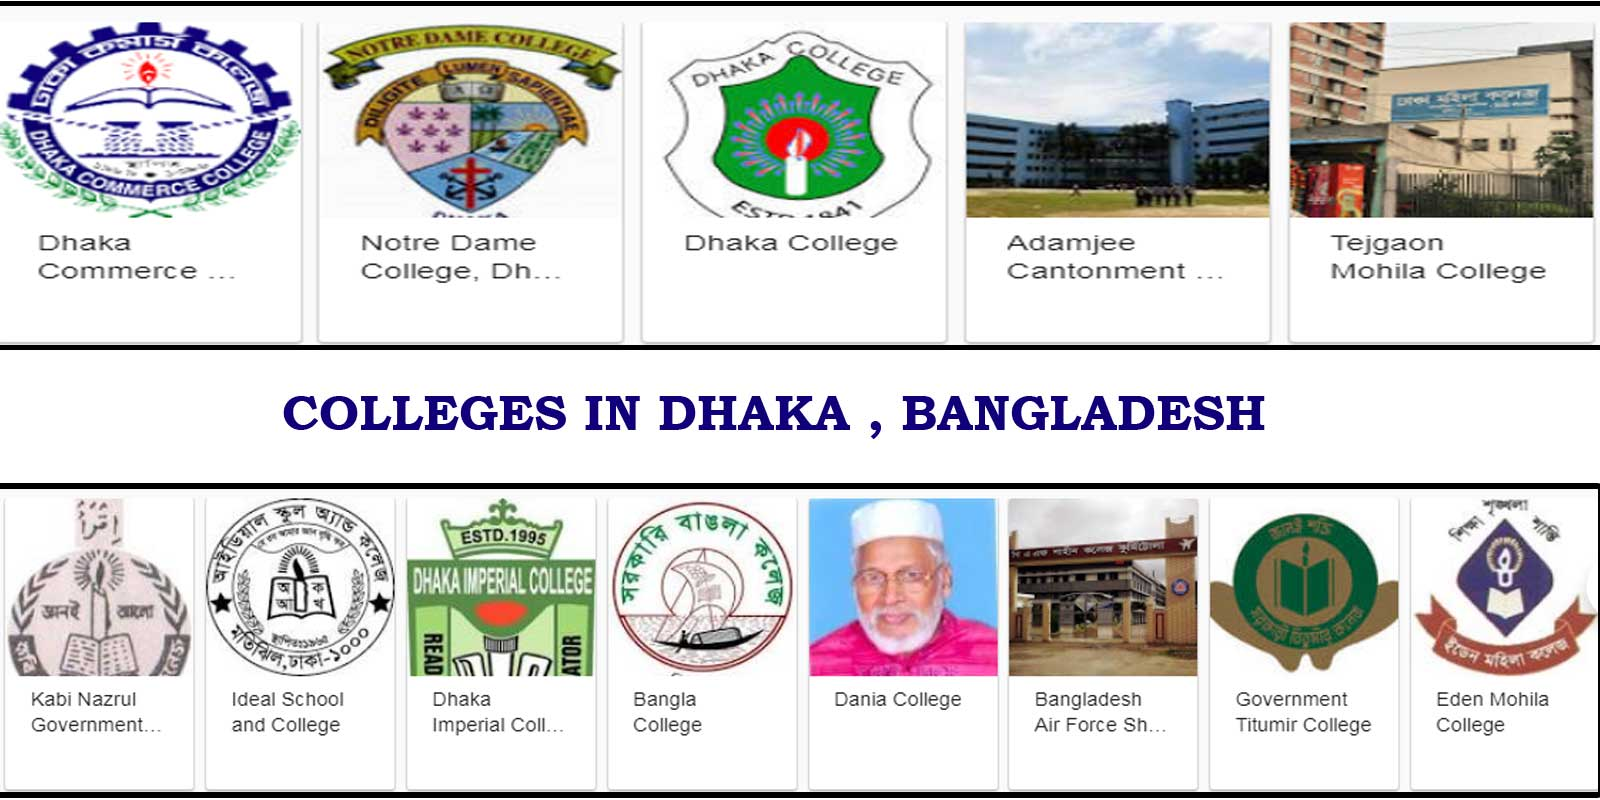 olleges in Dhaka Bangladesh